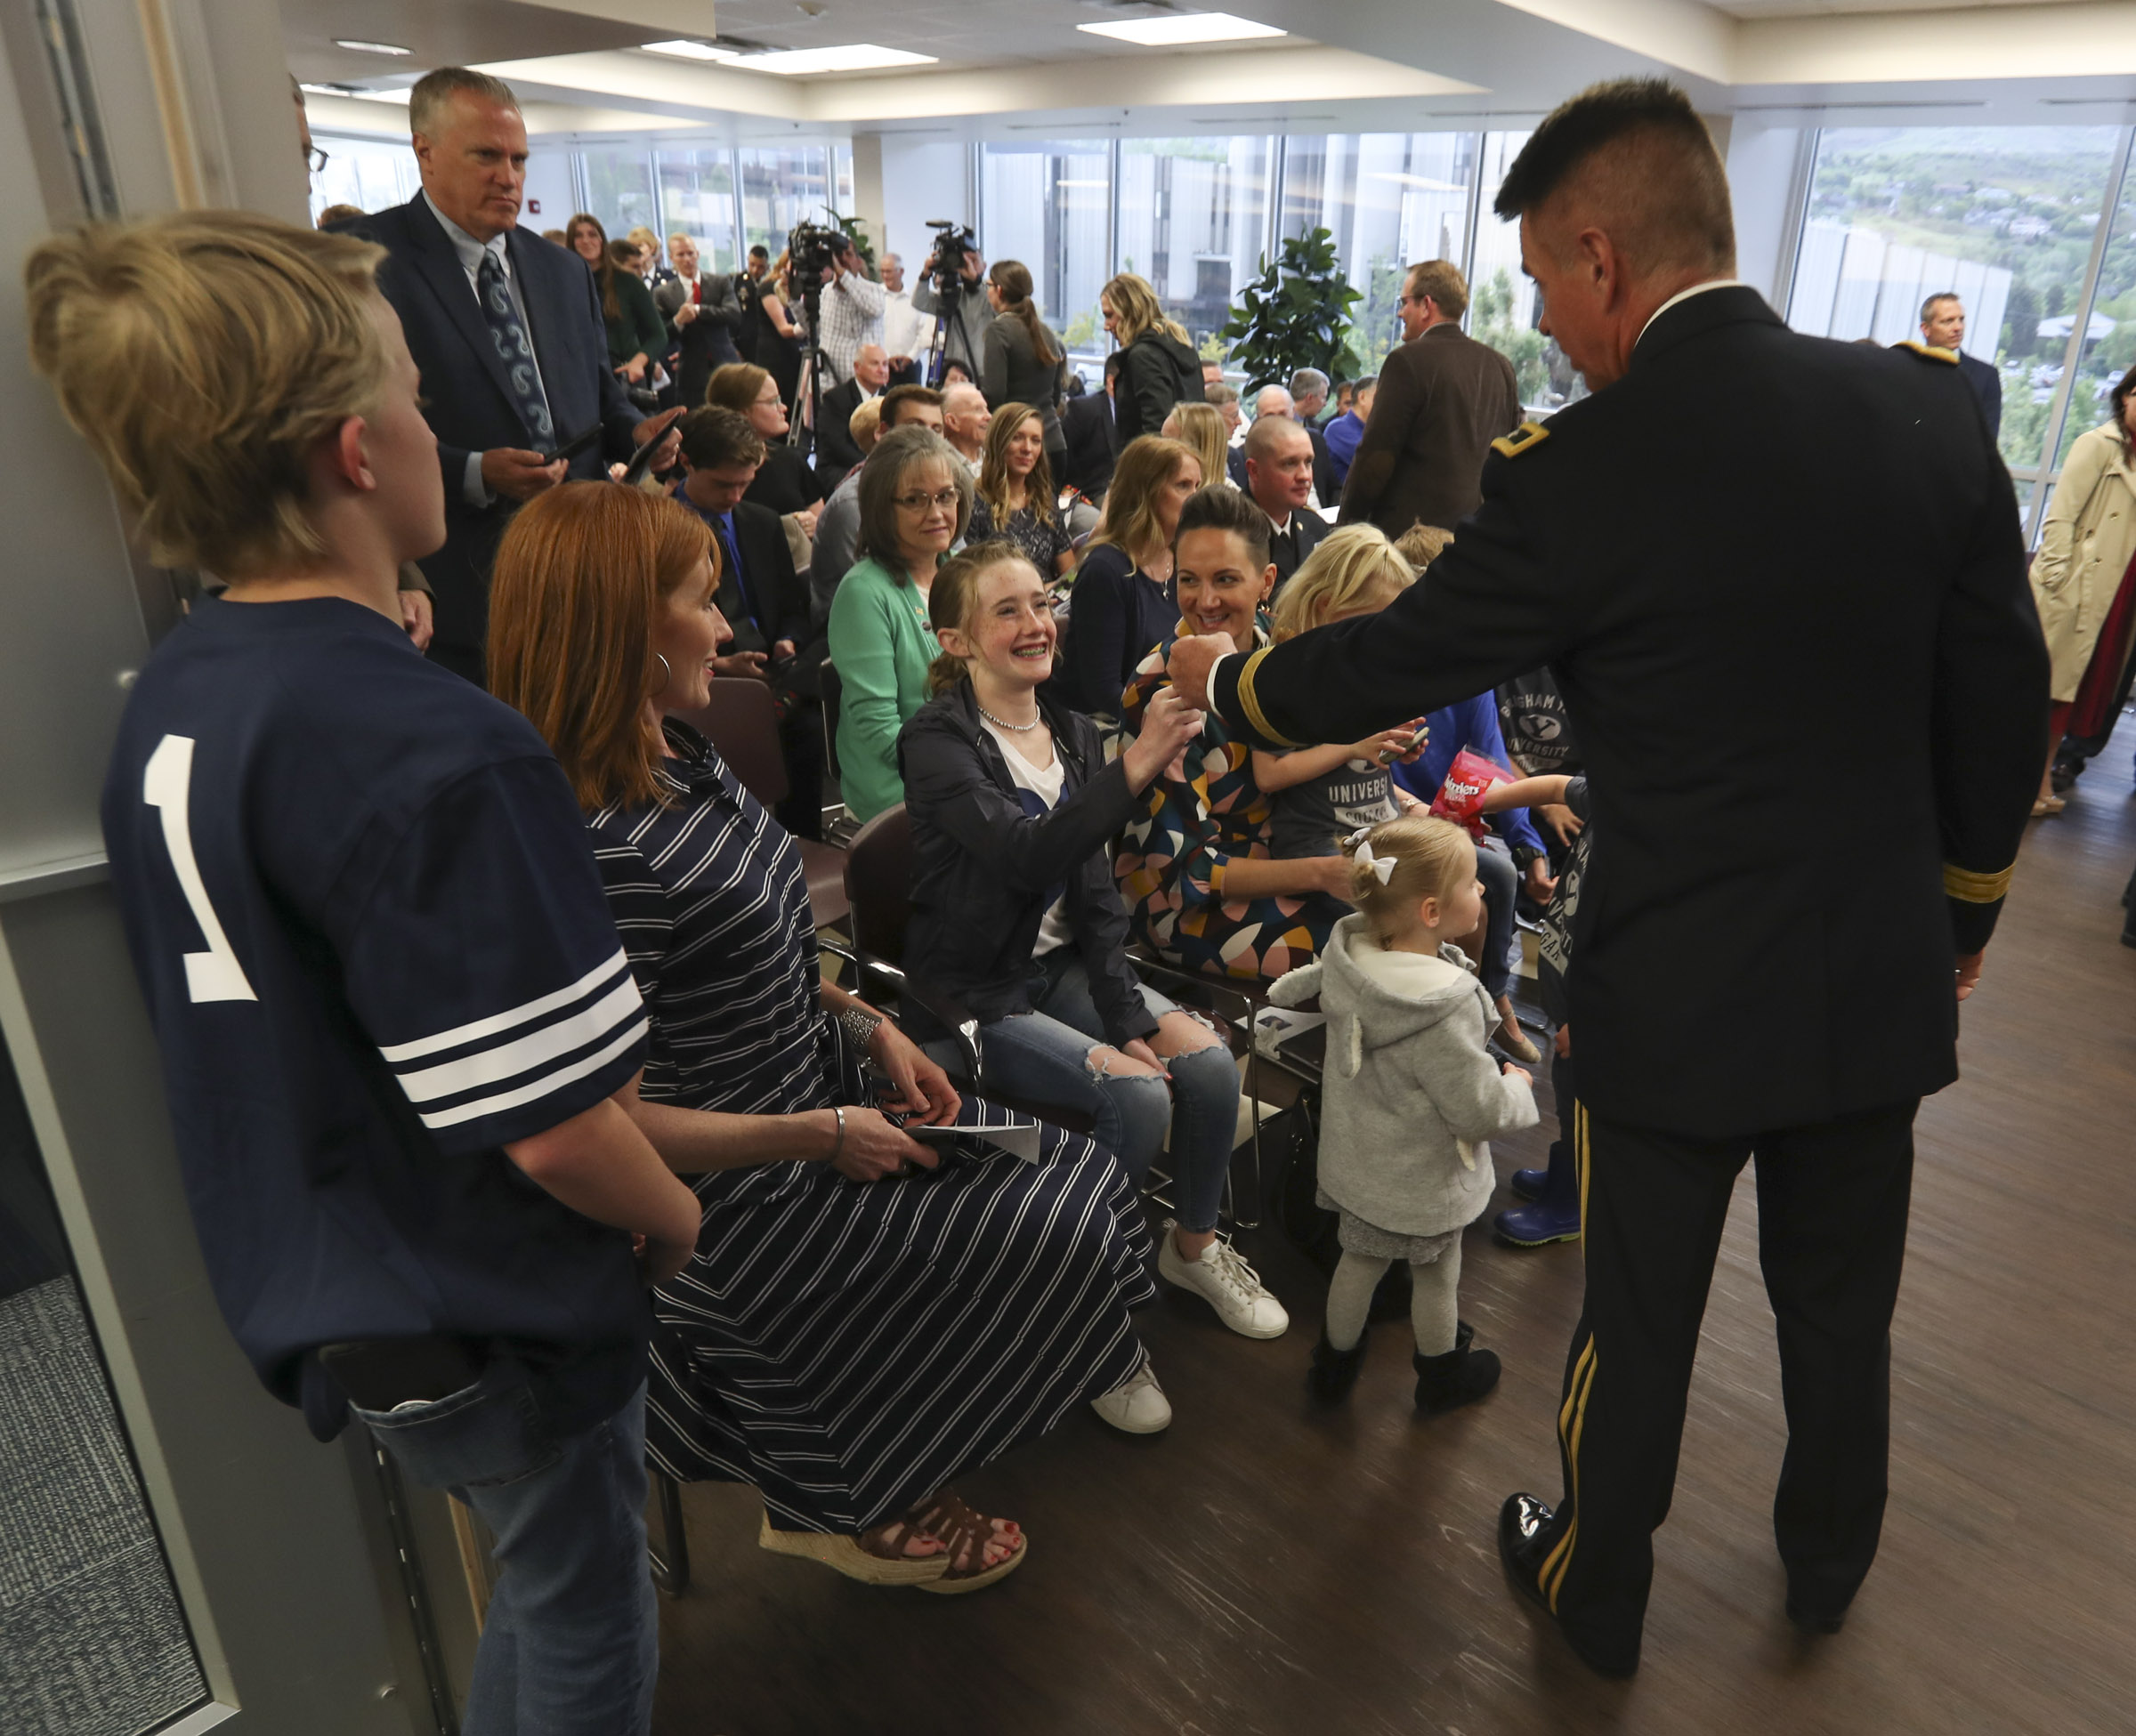 Maj. Gen. Jefferson S. Burton talks with Jennie Taylor and her children during a ceremony where the name of her husband, Maj. Brent Taylor, was added to the Reflection Room Memorial Wall in the Wilkinson Center on the BYU campus in Provo on Thursday, May 23, 2019. Taylor was killed in Afghanistan in 2018.